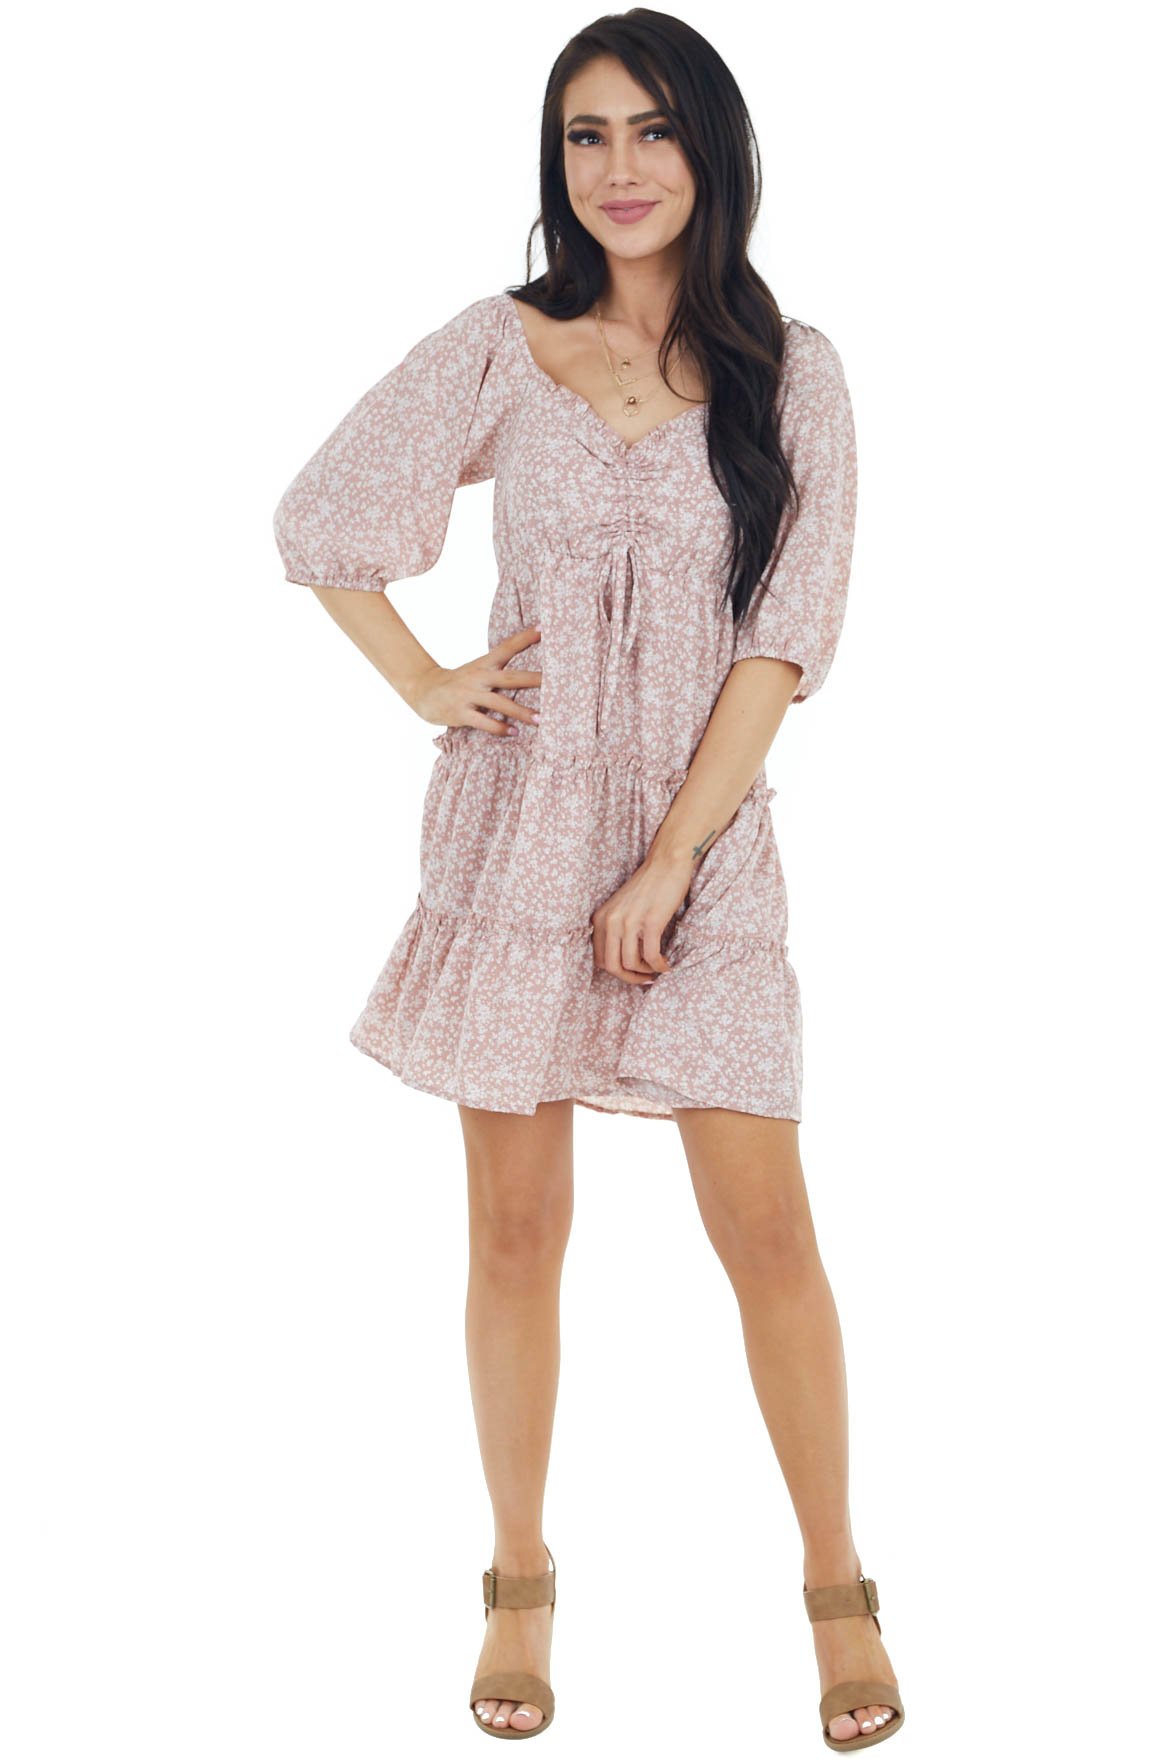 Dusty Rose Floral Print Mini Tiered Dress with 3/4 Sleeves